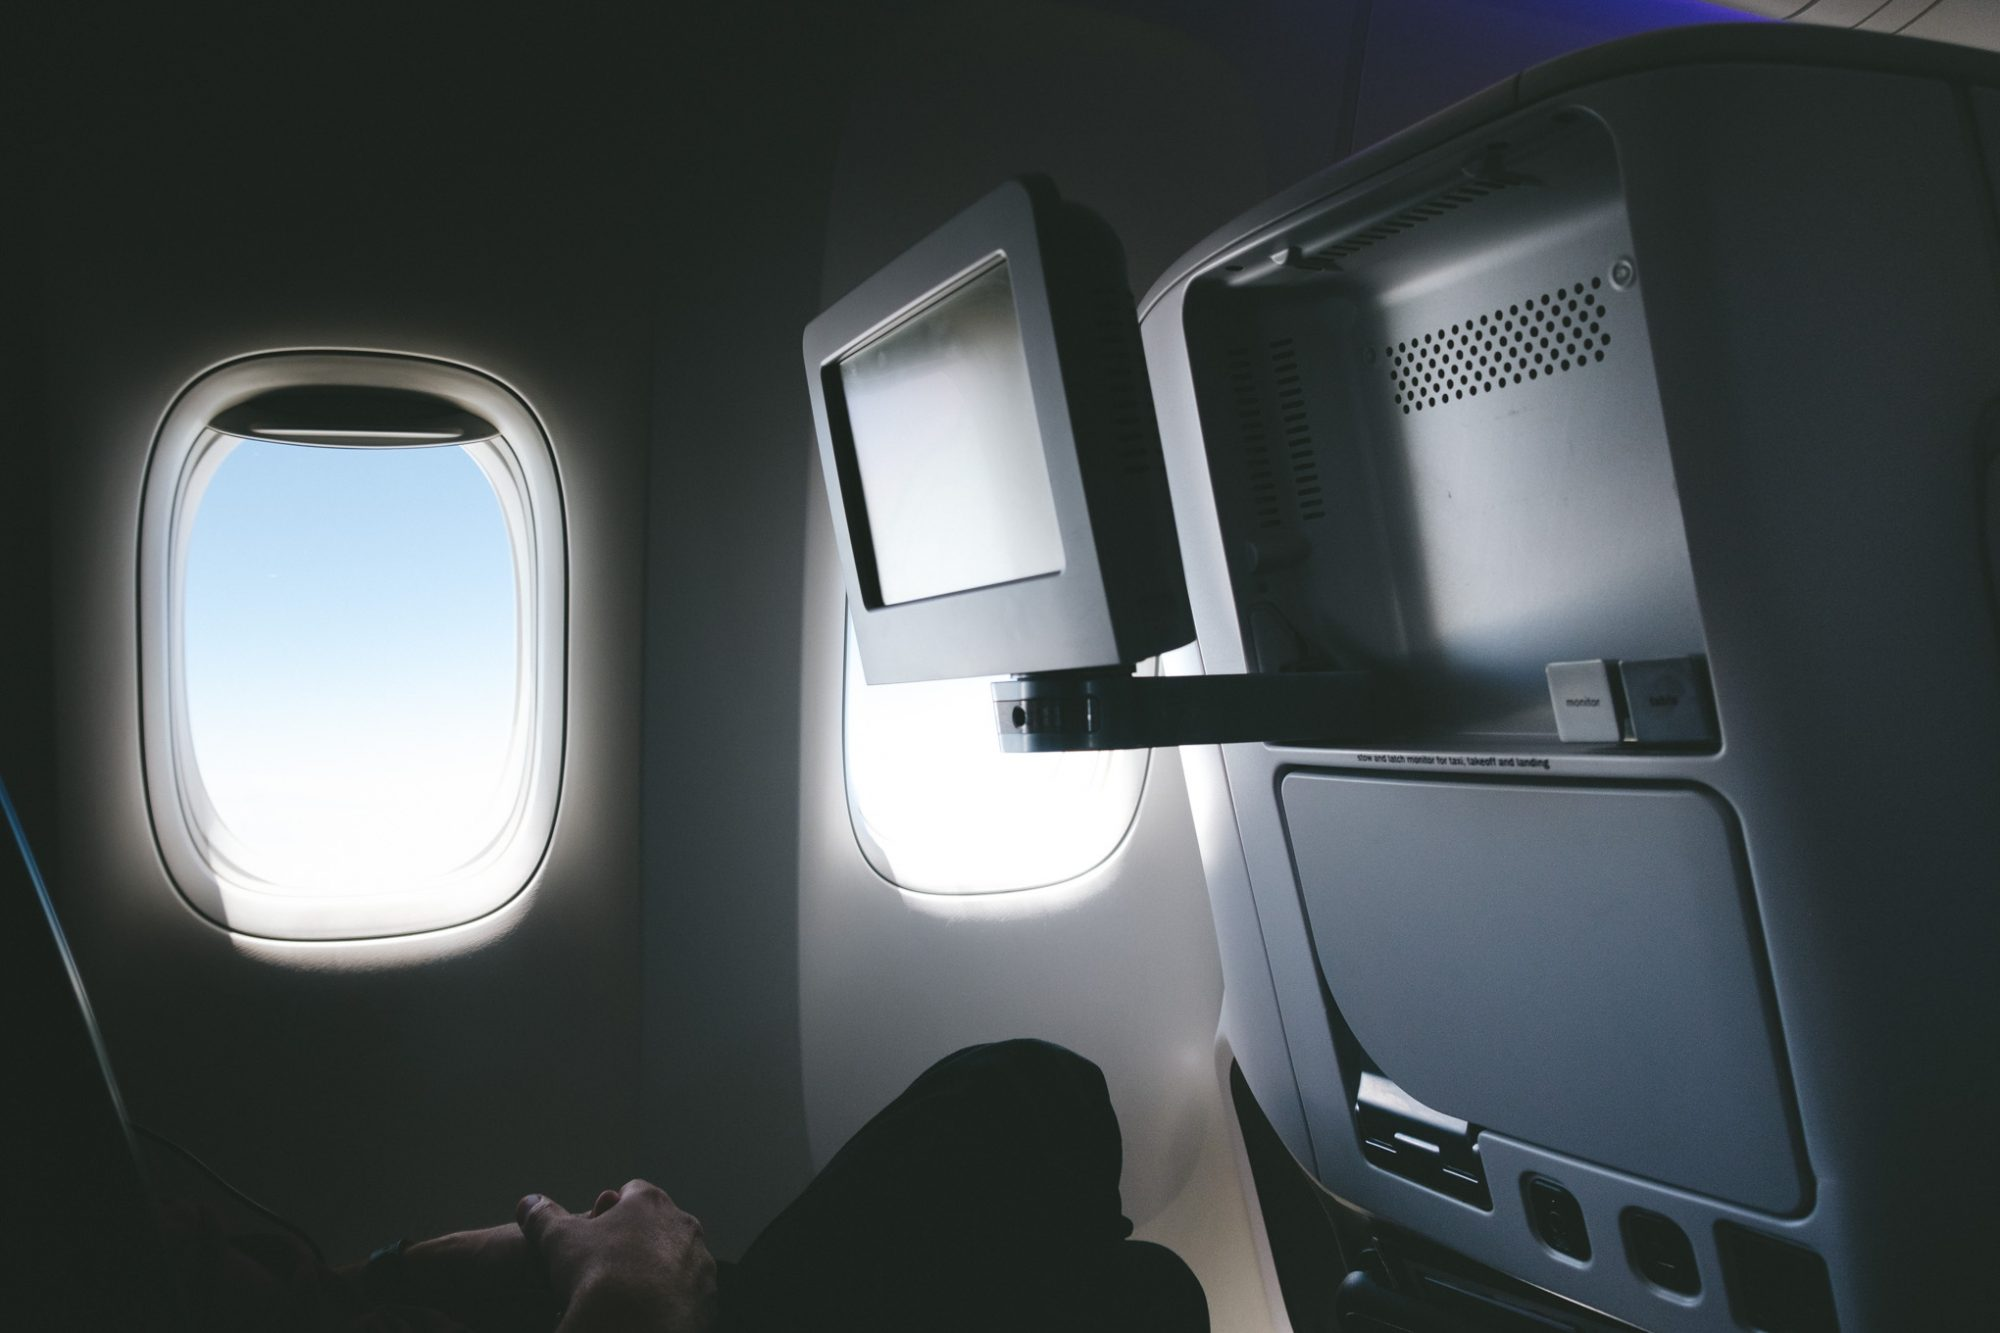 Air New Zealand Premium Economy Screen